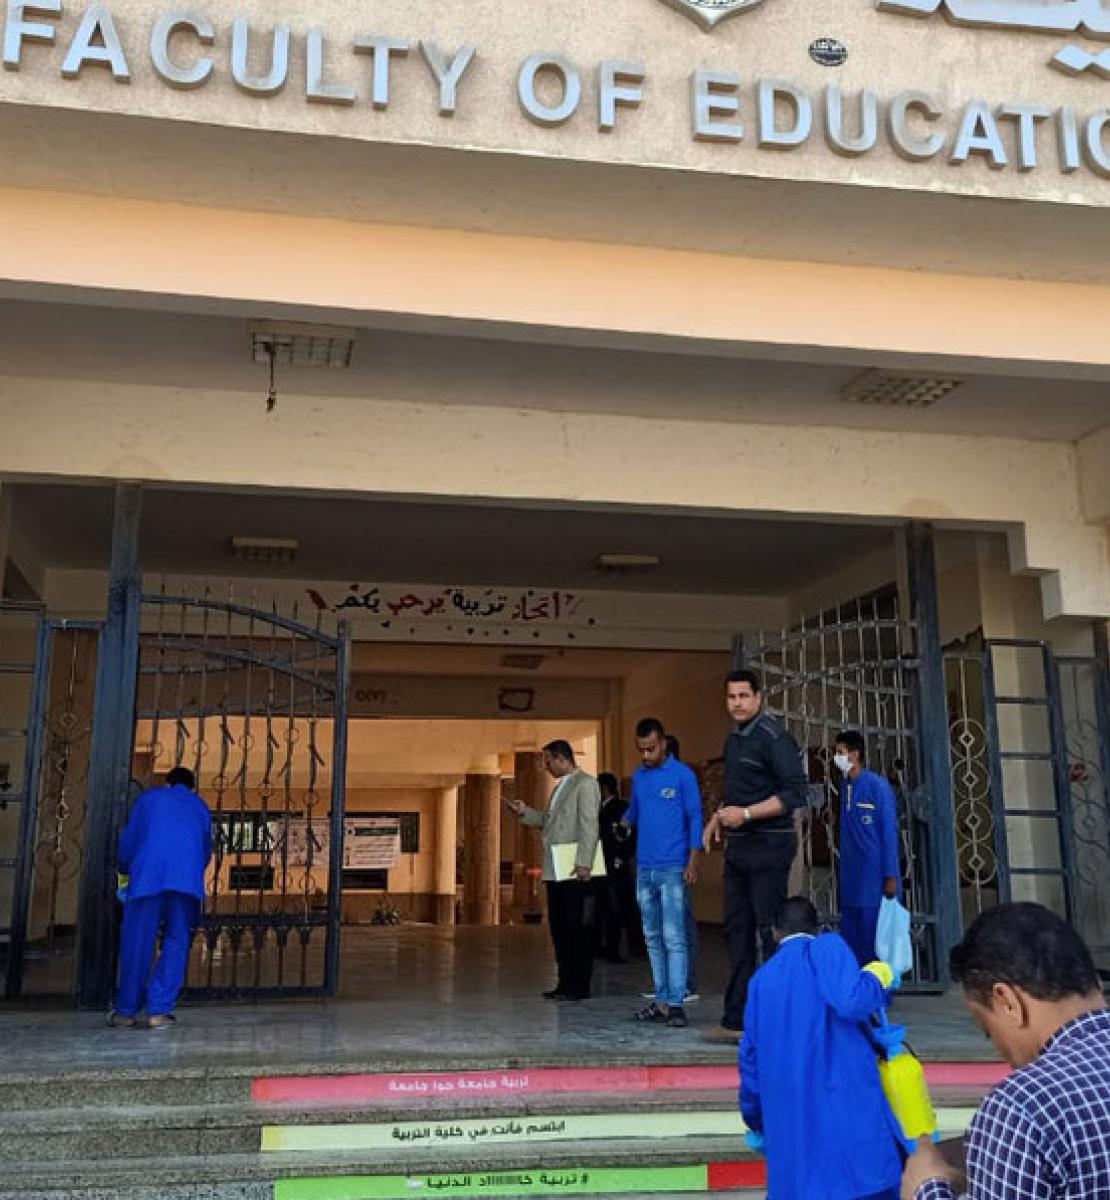 Shows men in protective gear cleaning the steps of the Faculty of Education.